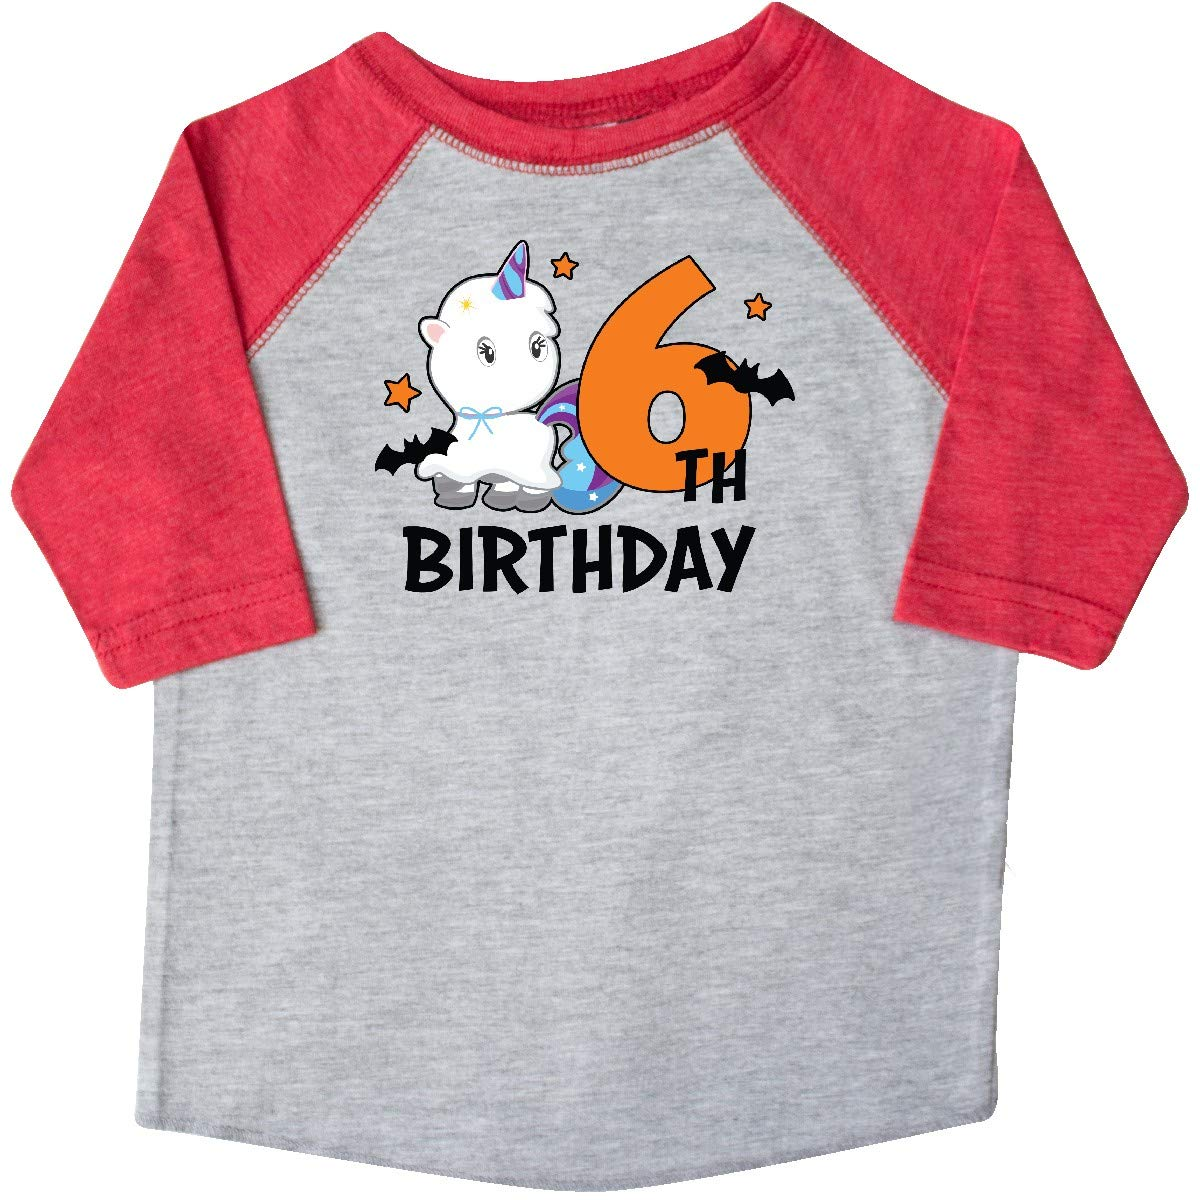 inktastic 6th Birthday with Unicorn Ghost and Bats Toddler T-Shirt